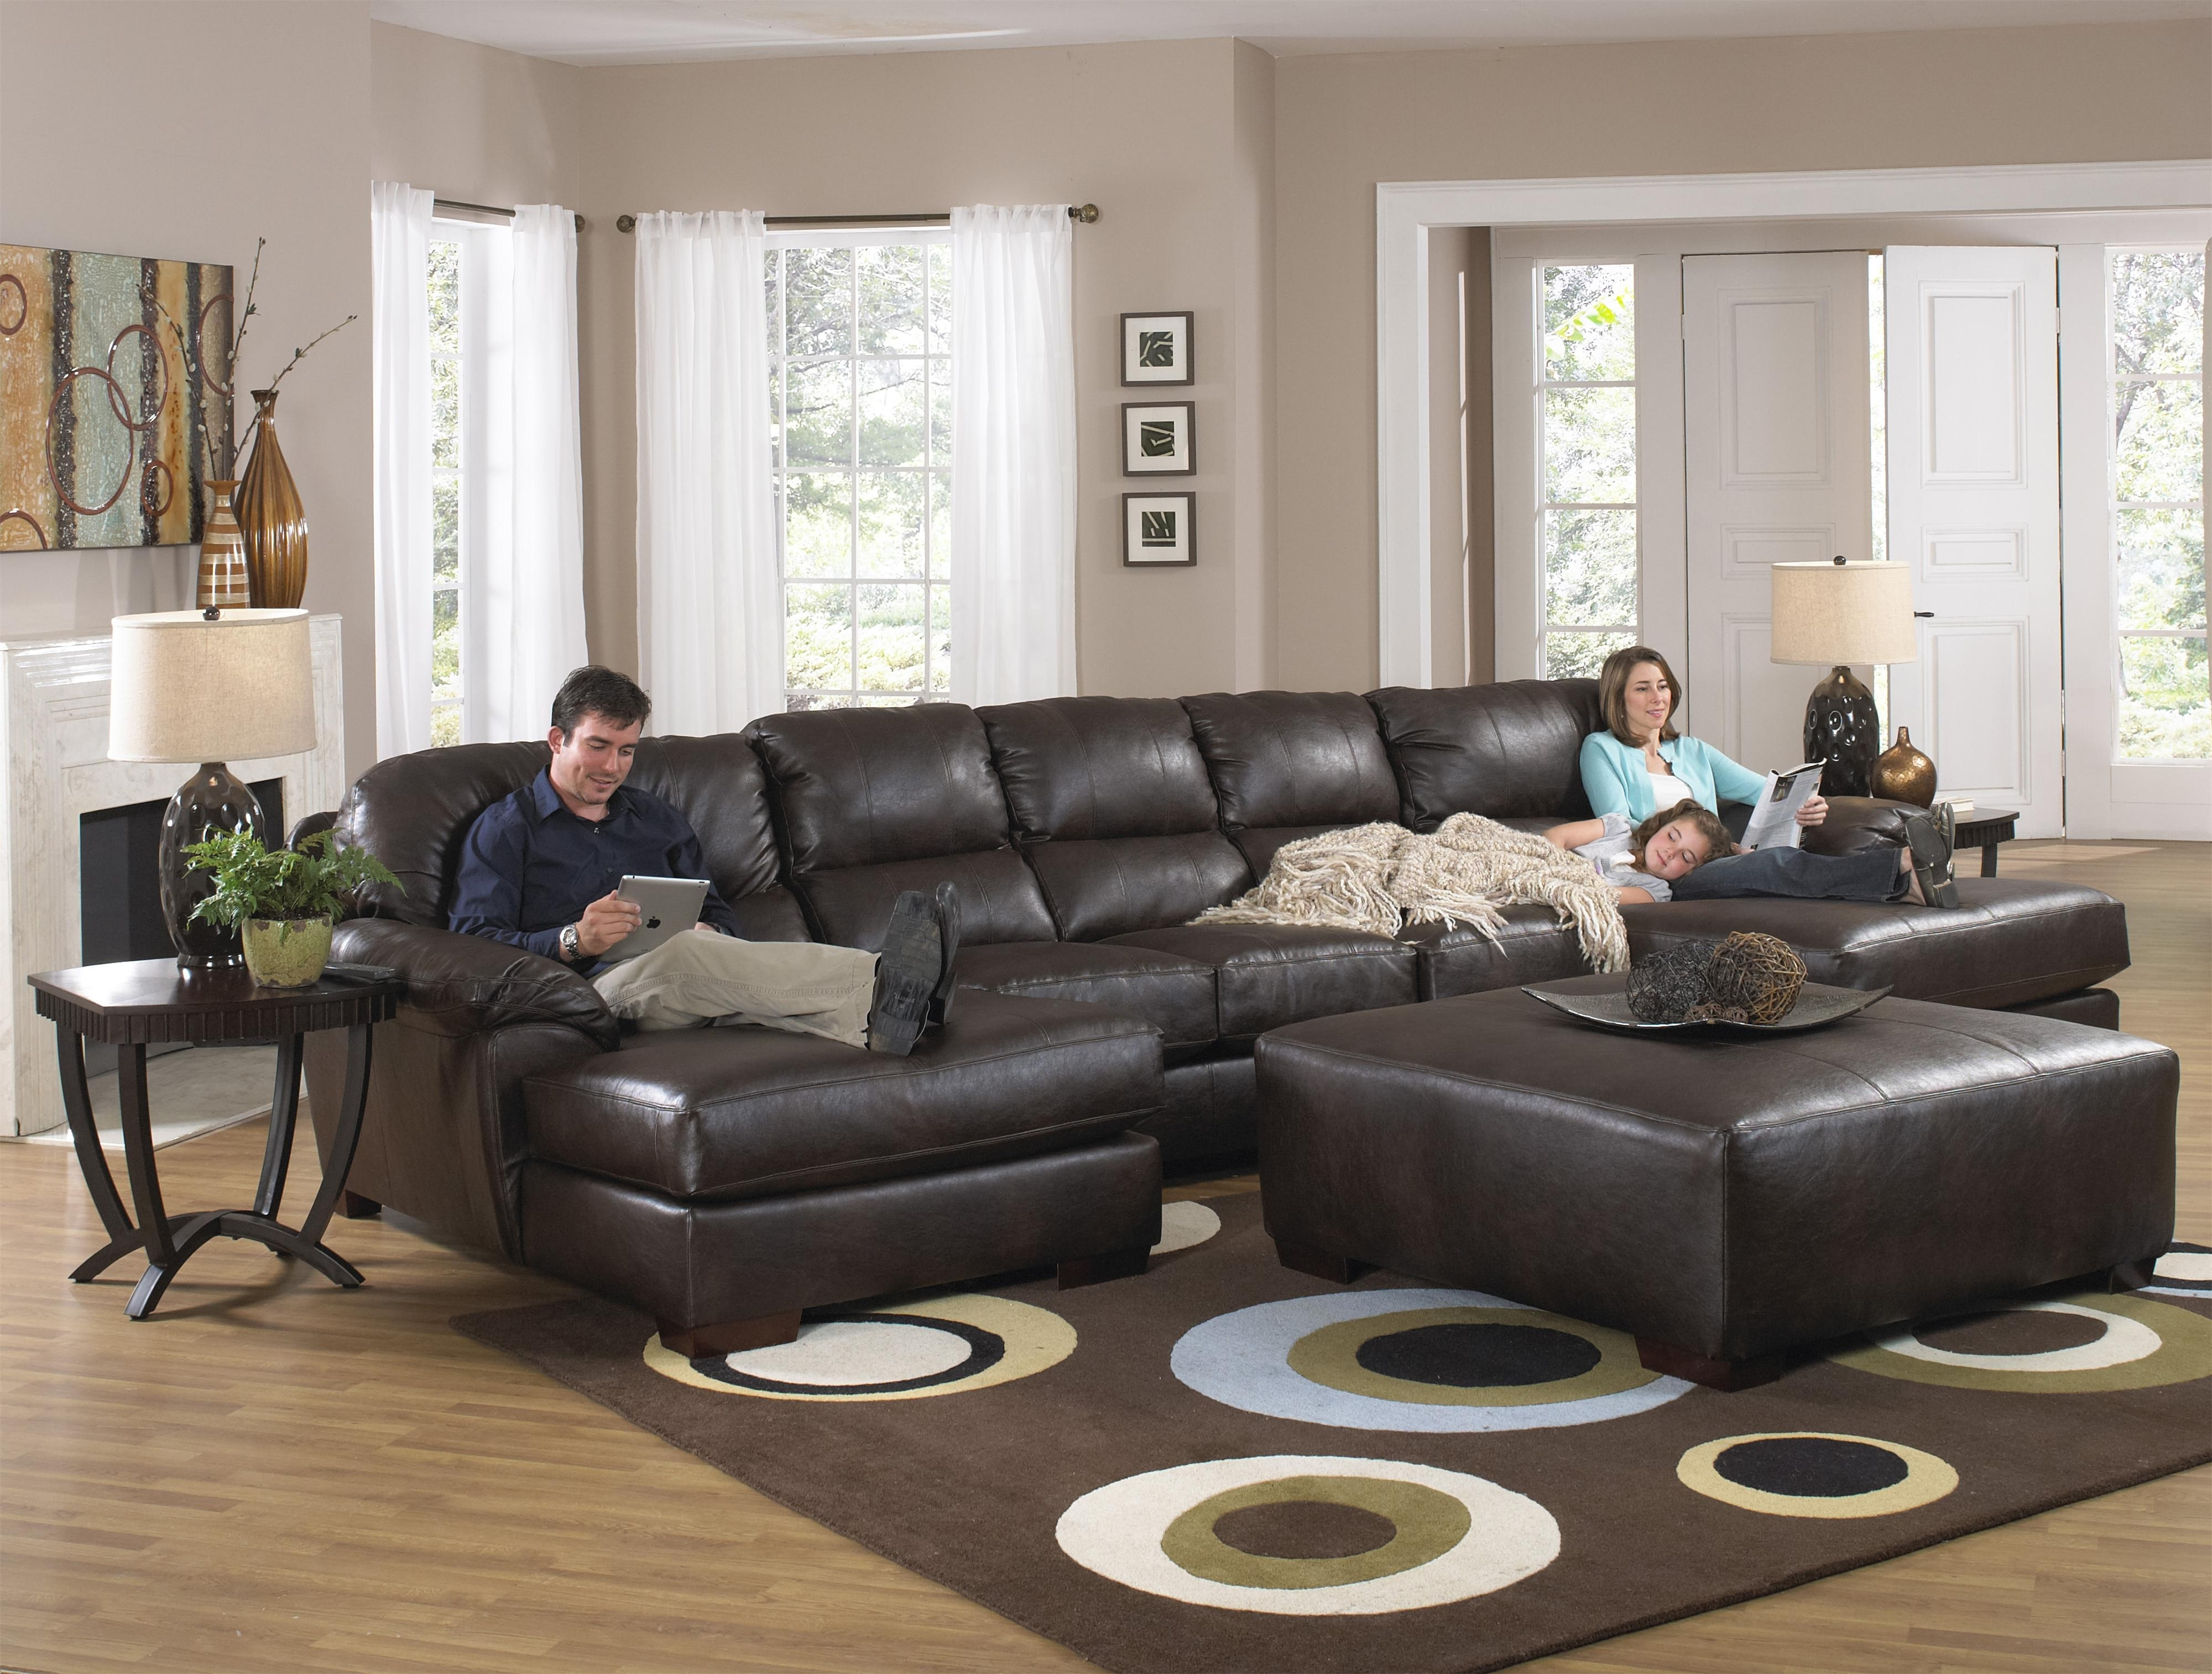 Newest Elliot Fabric Microfiber Sectional Sofa 3 Piece Microfiber Intended For Microfiber Sectional Sofas With Chaise (View 10 of 15)